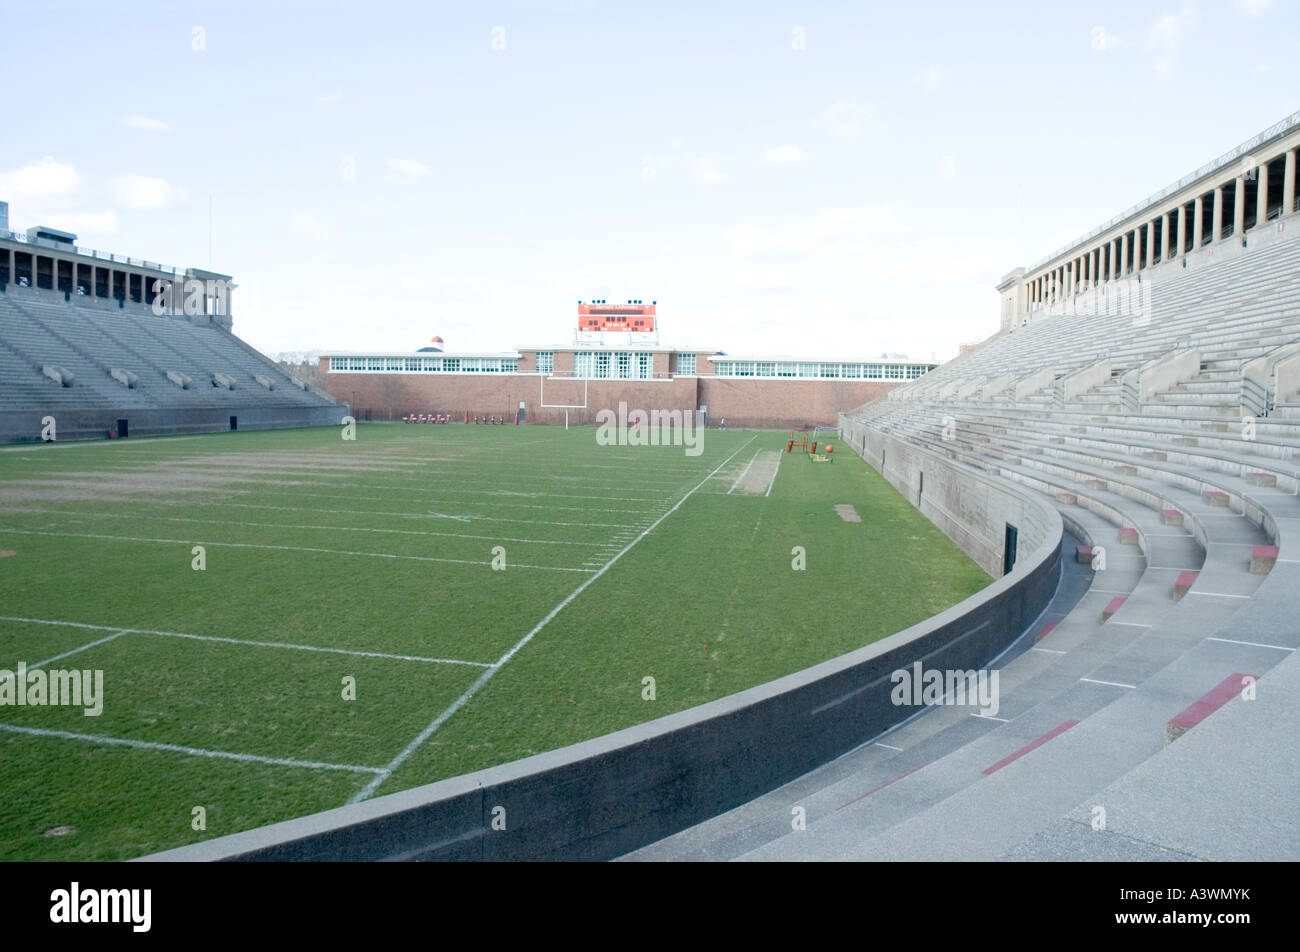 Harvard Stadium in Harvard University - Stock Image